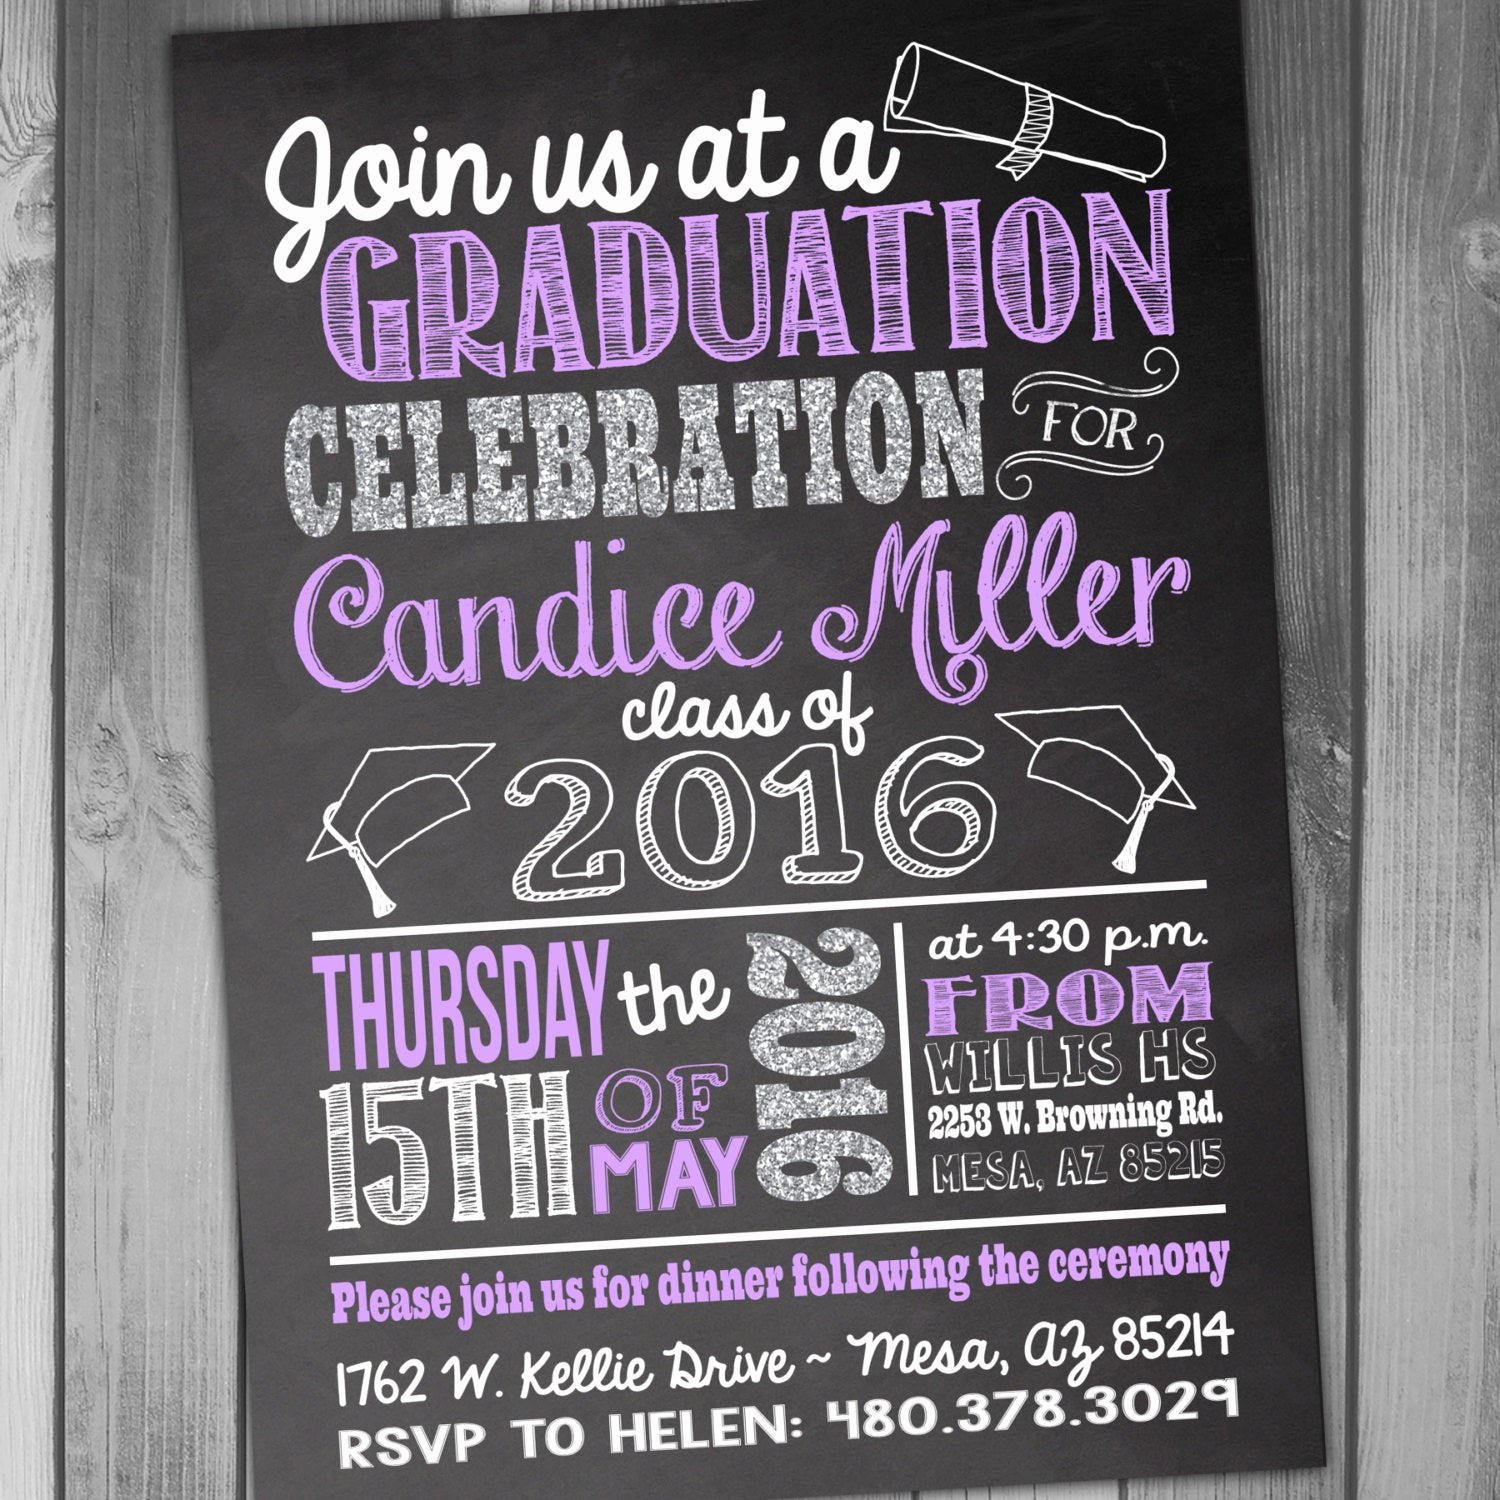 Graduation Party Invitation Wording Awesome Graduation Invitation High School Graduation Graduation Party